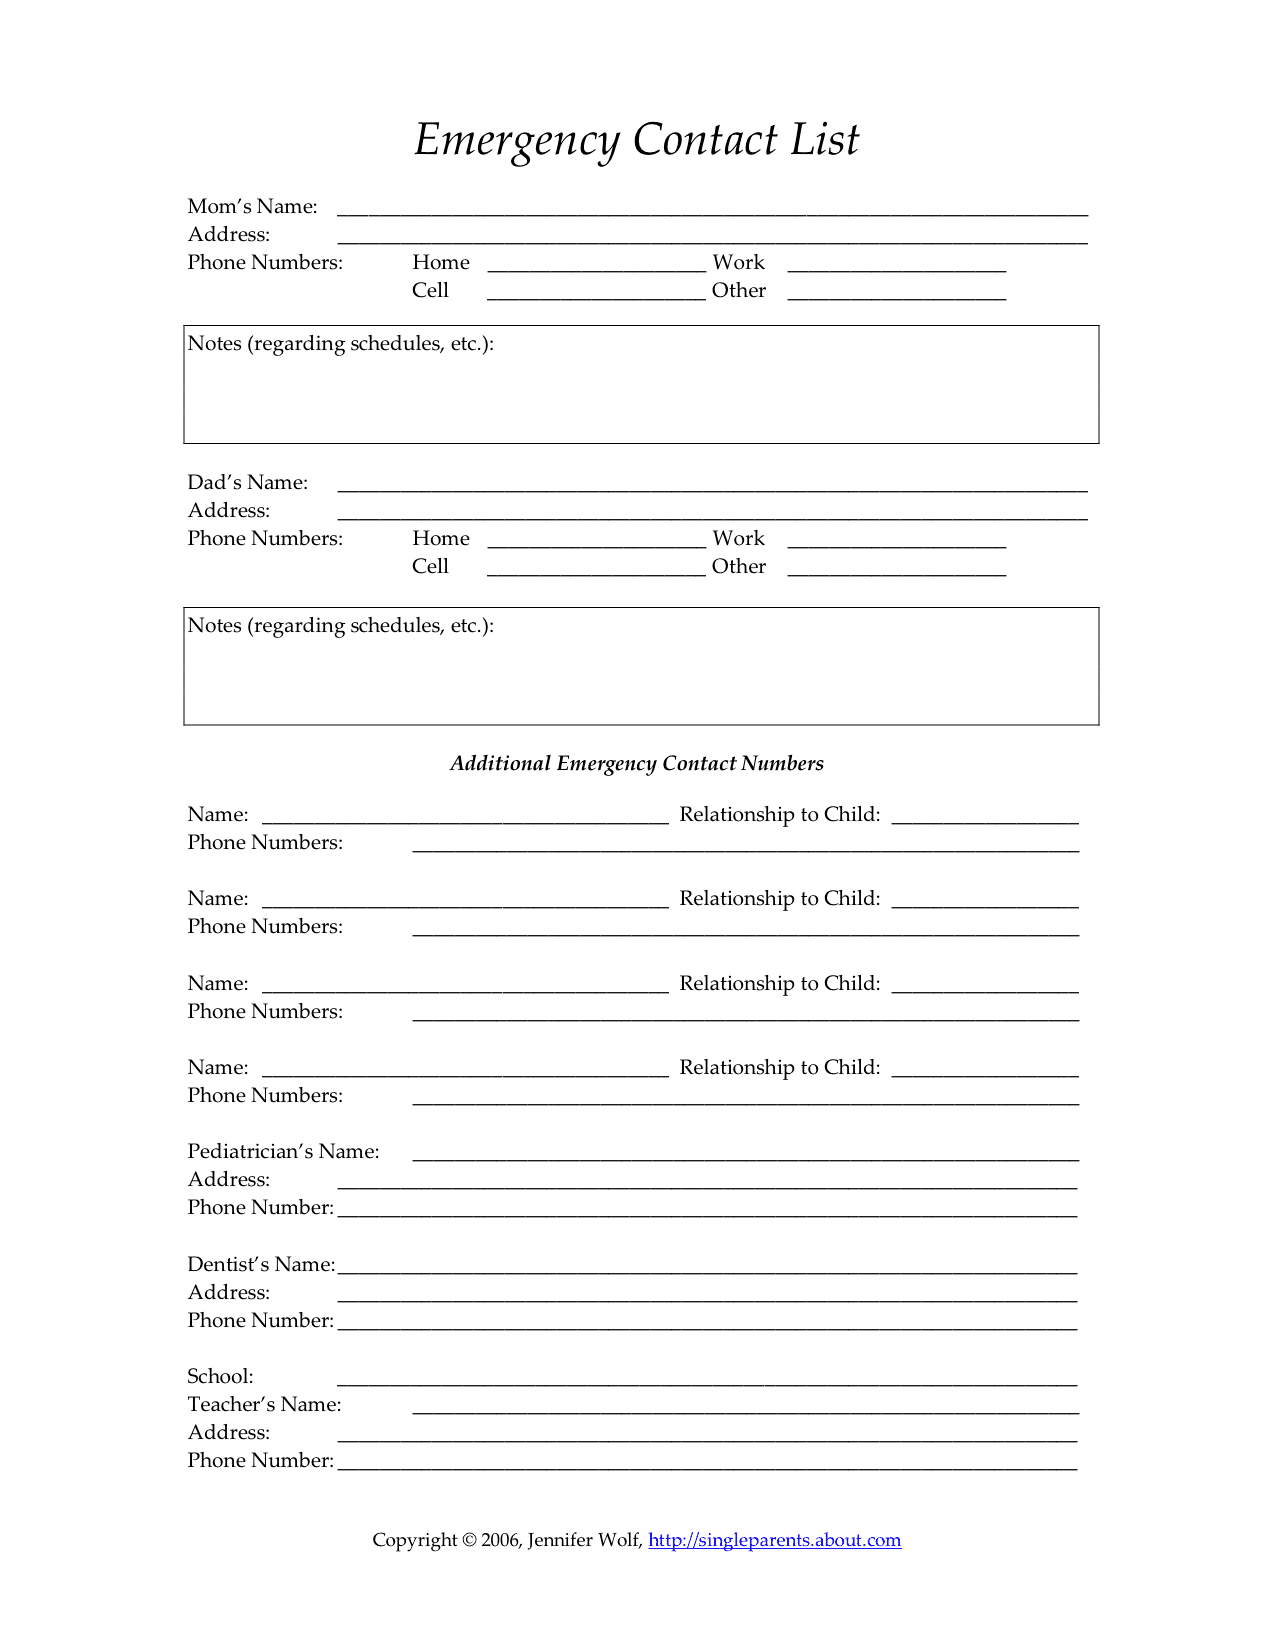 Child's Emergency Contact Form | Single Parent Families